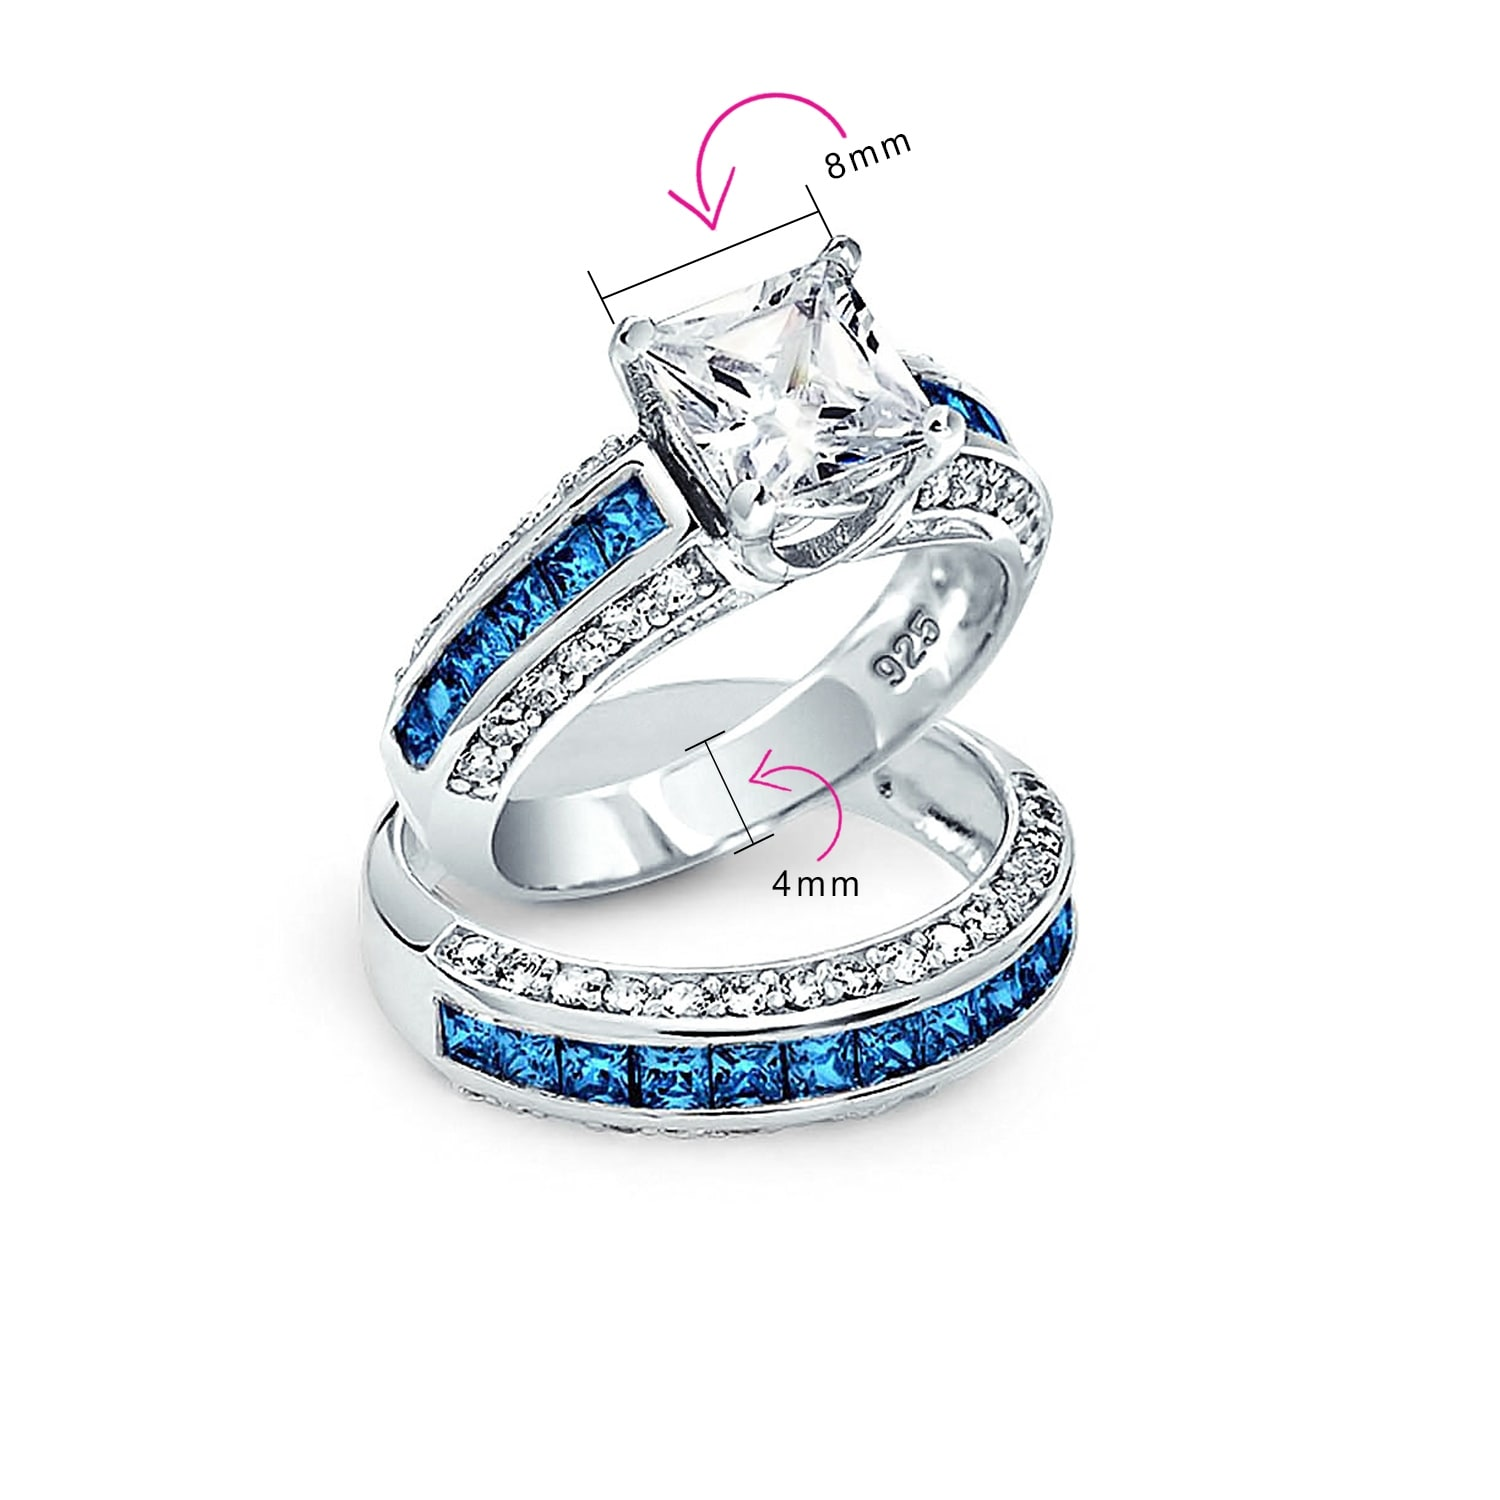 Wedding Engagement Set 3 Piece Princess Cut Cubic Zirconia 925 Sterling Silver